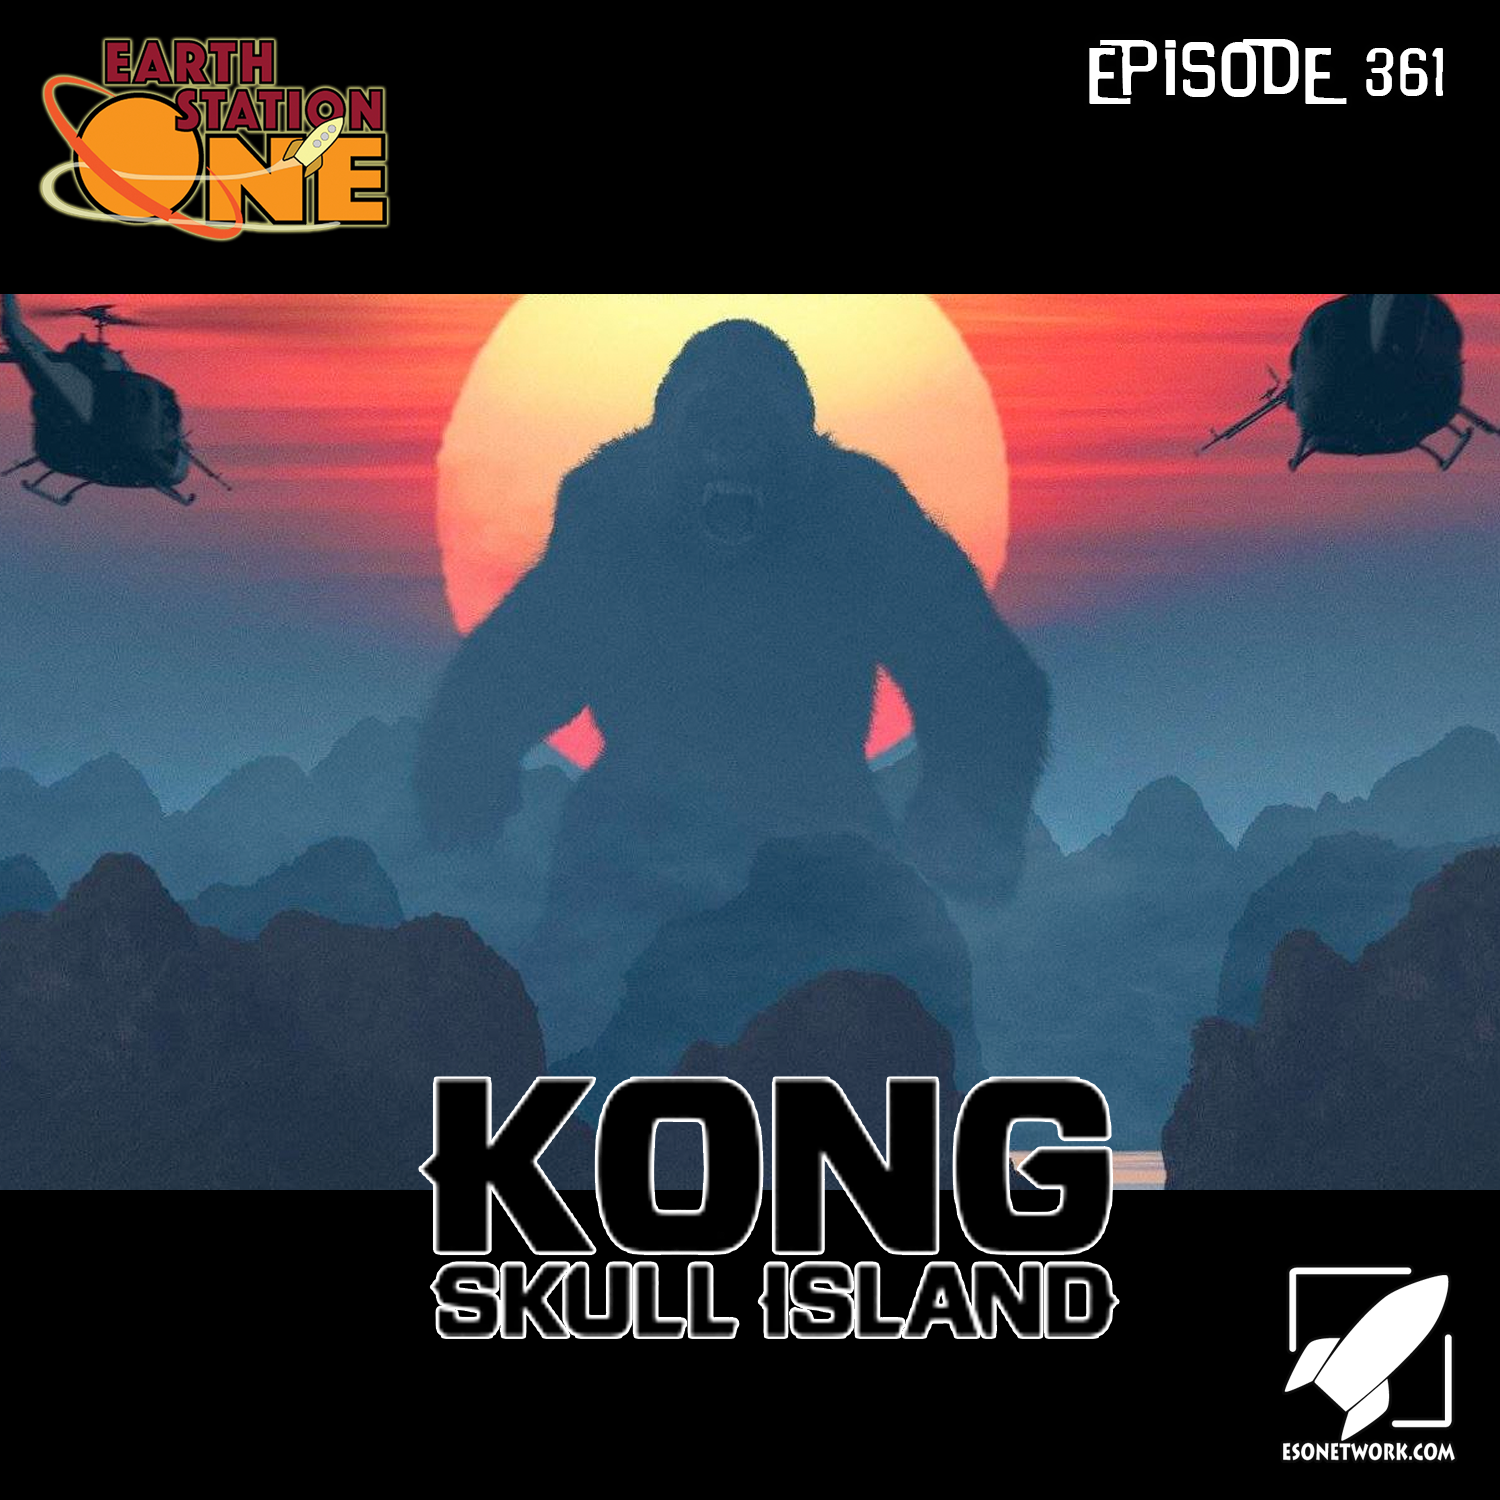 The Earth Station One Podcast Ep 361